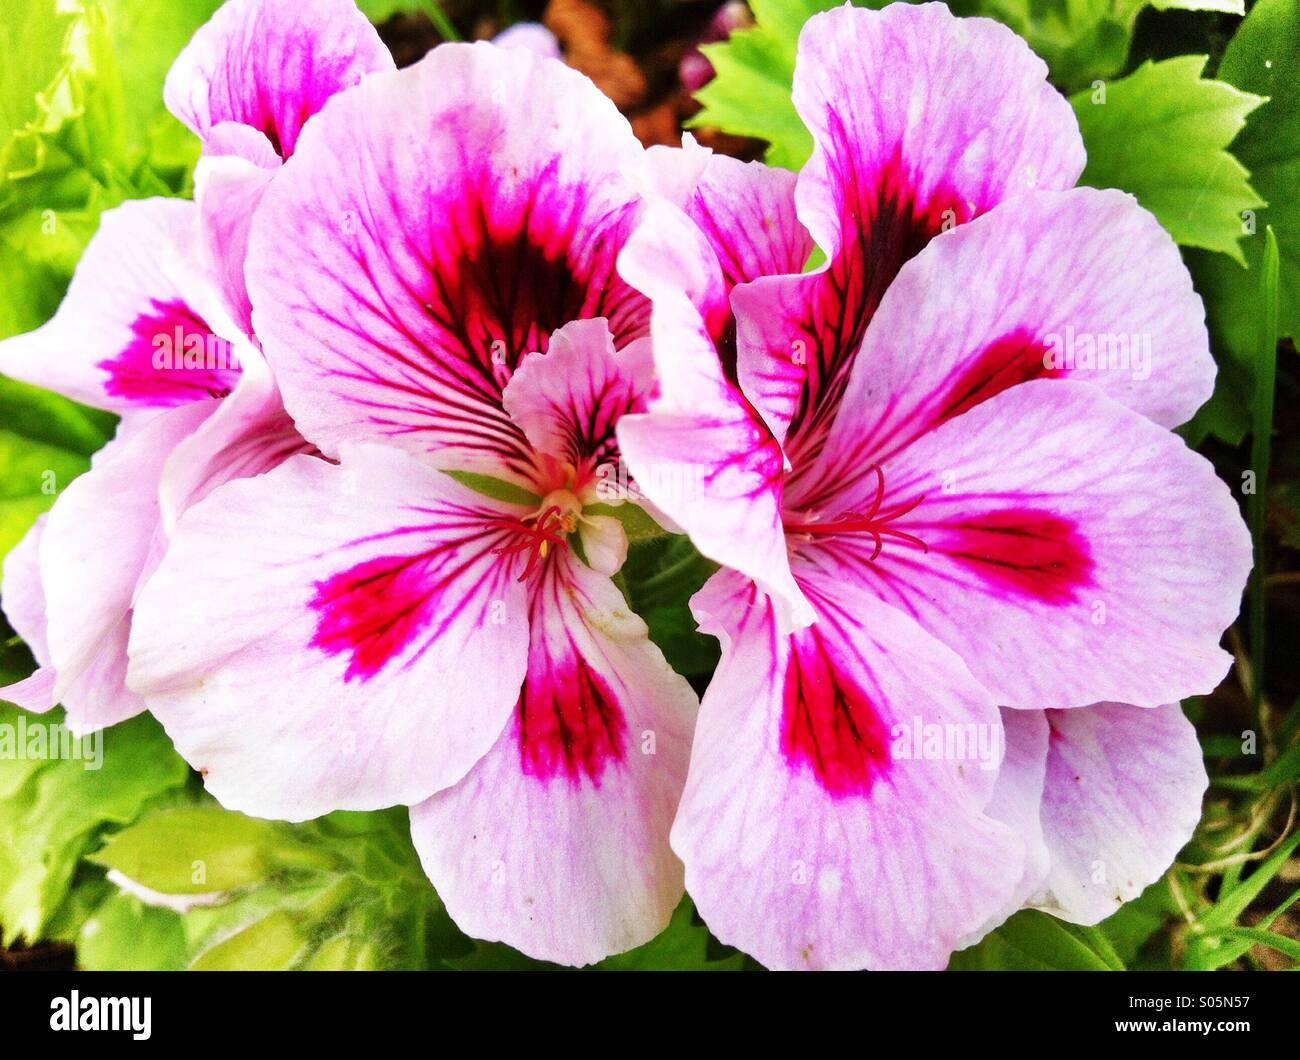 Pink and white geranium stock photos pink and white geranium stock white pink geranium flowers stock image mightylinksfo